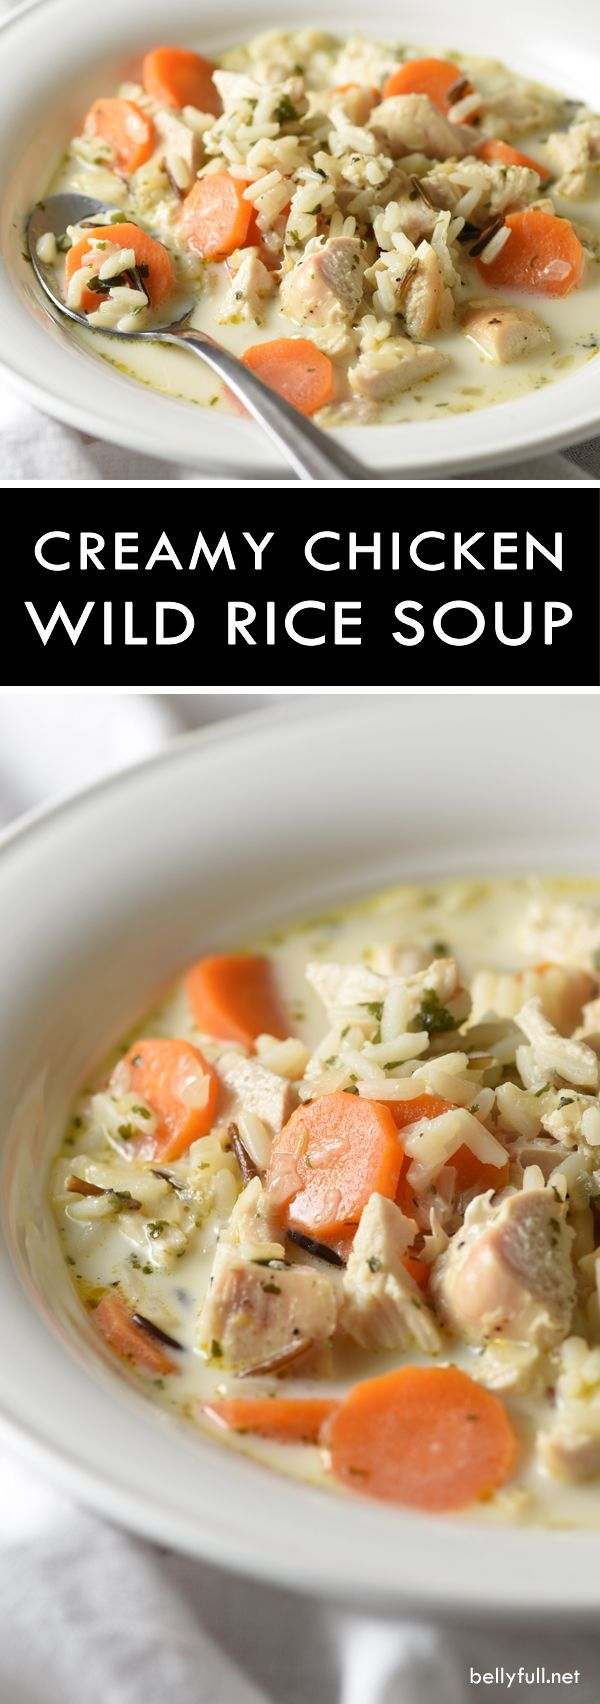 This Creamy Chicken Wild Rice Soup - a wonderfully quick and easy soup made with wild rice instead of noodles and a blend of spices. Delicious!